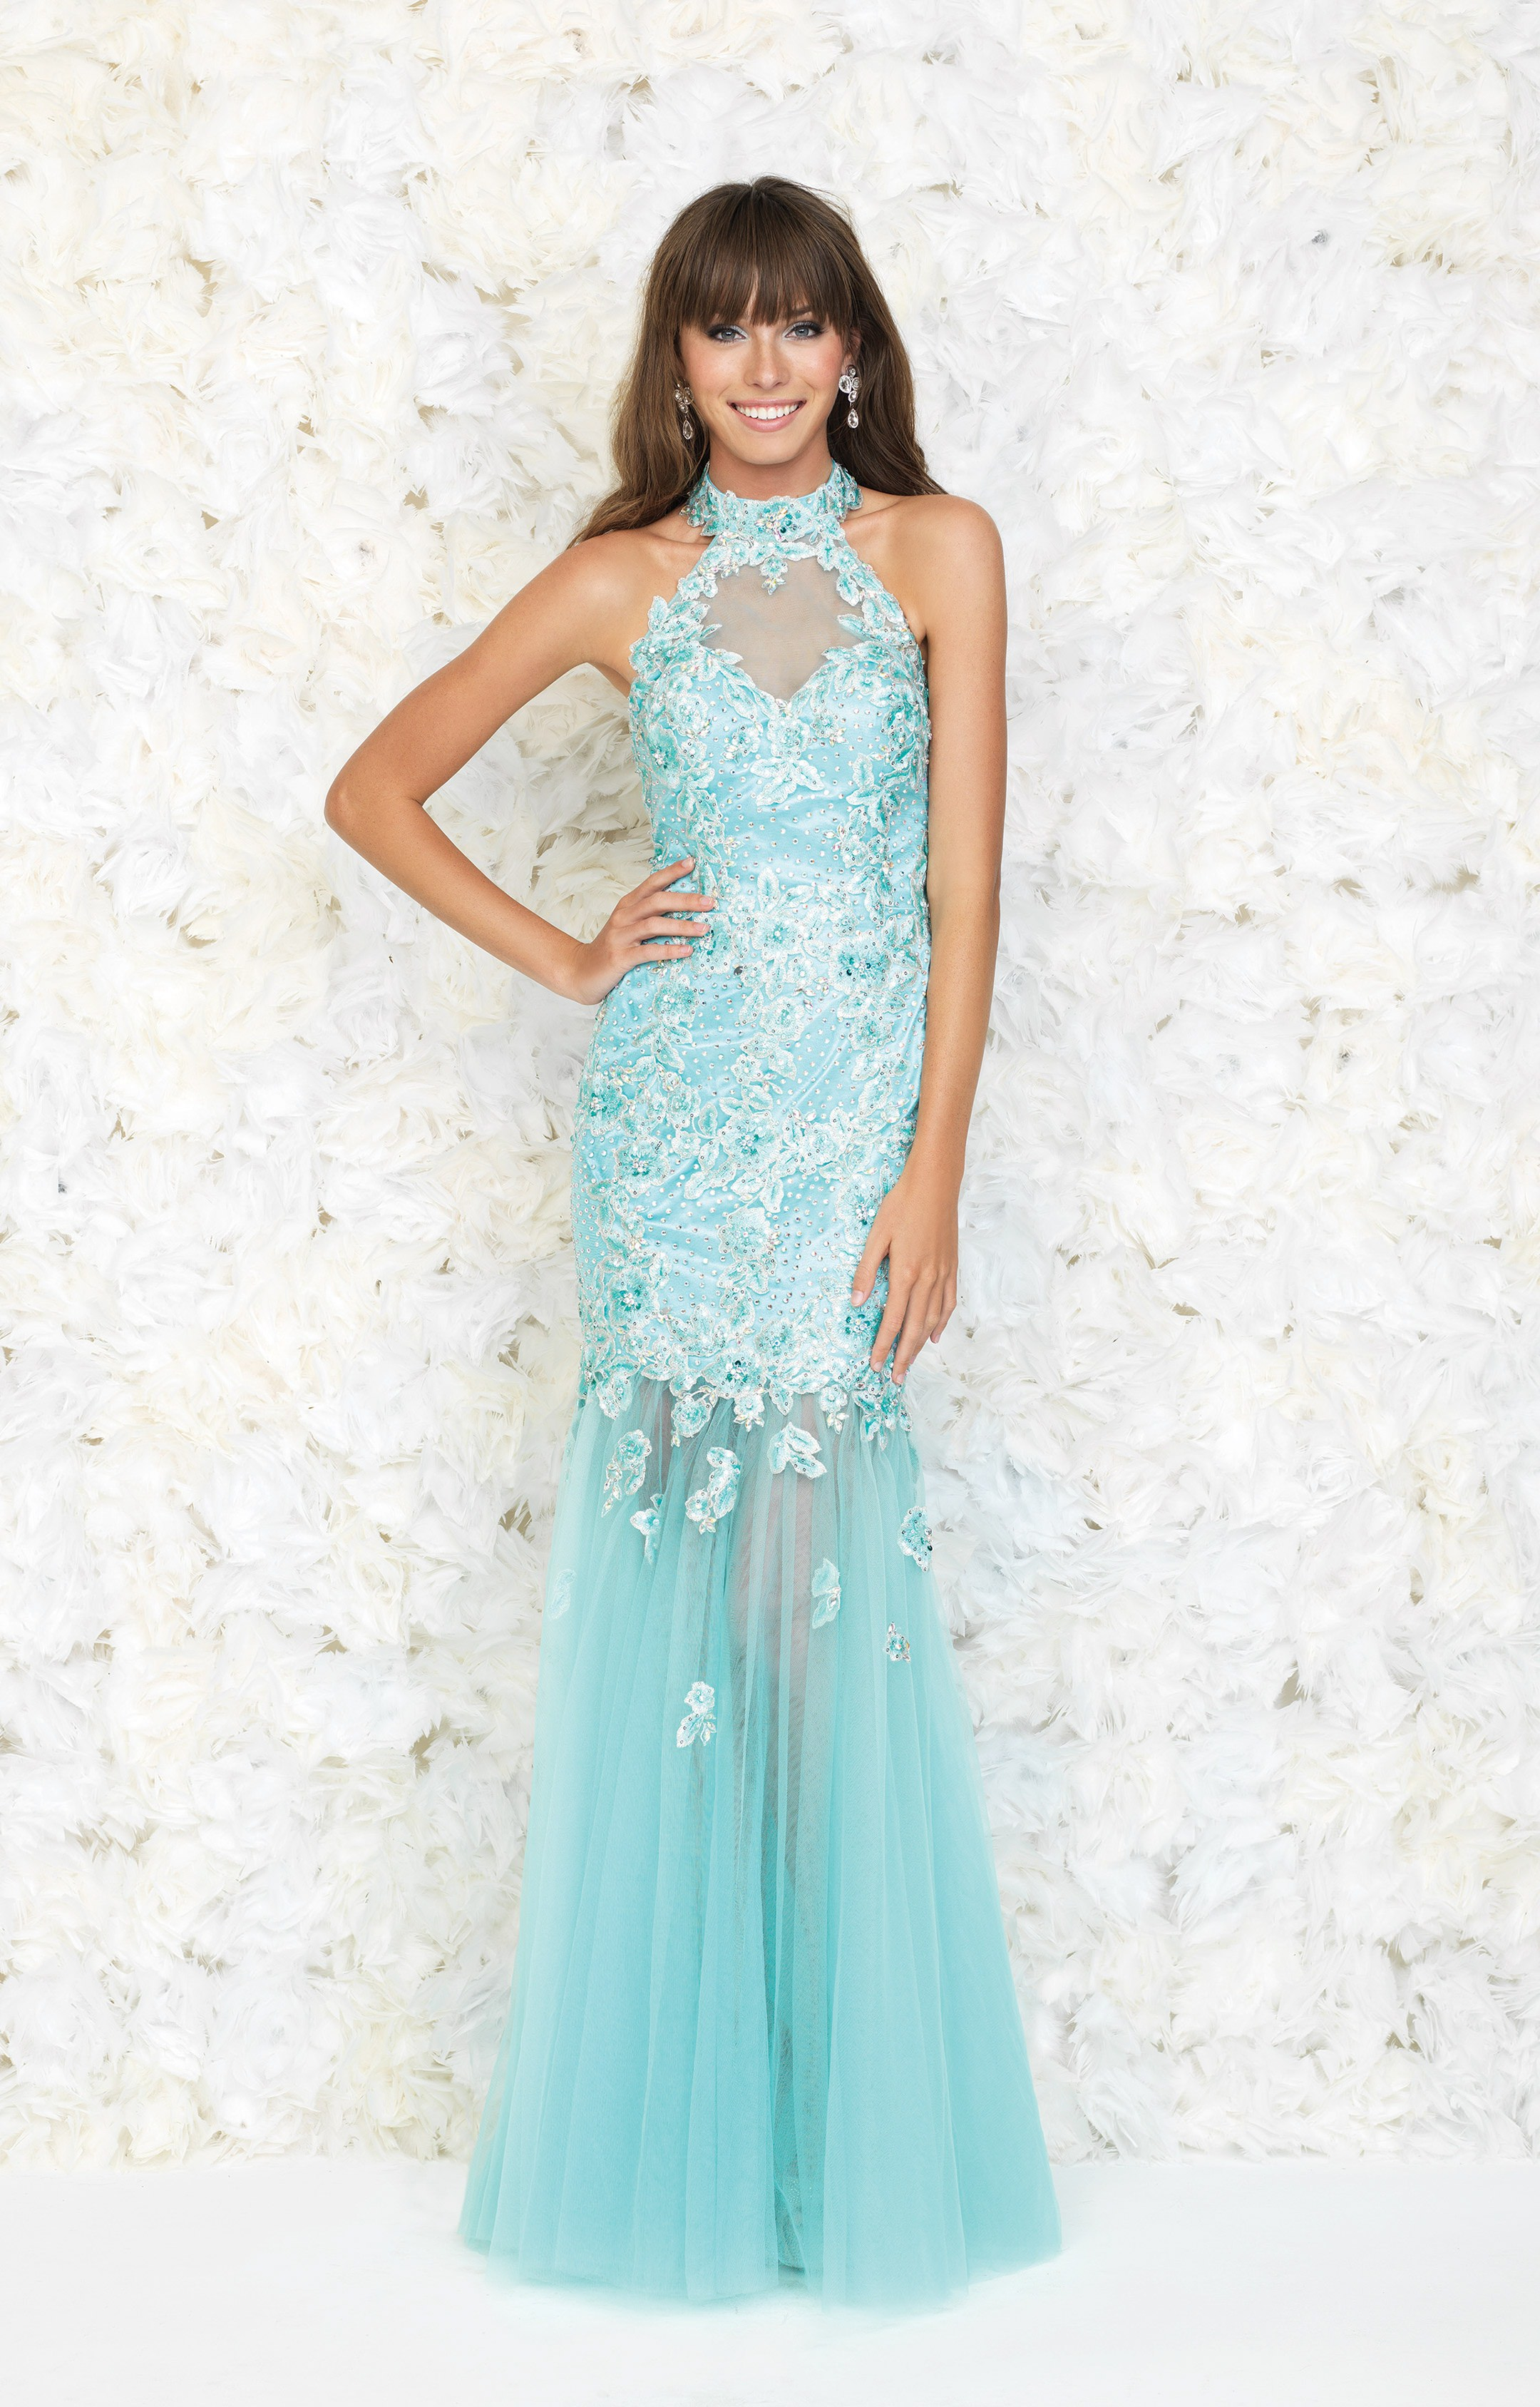 Madison James 15-141 - The State of Grace Dress Prom Dress